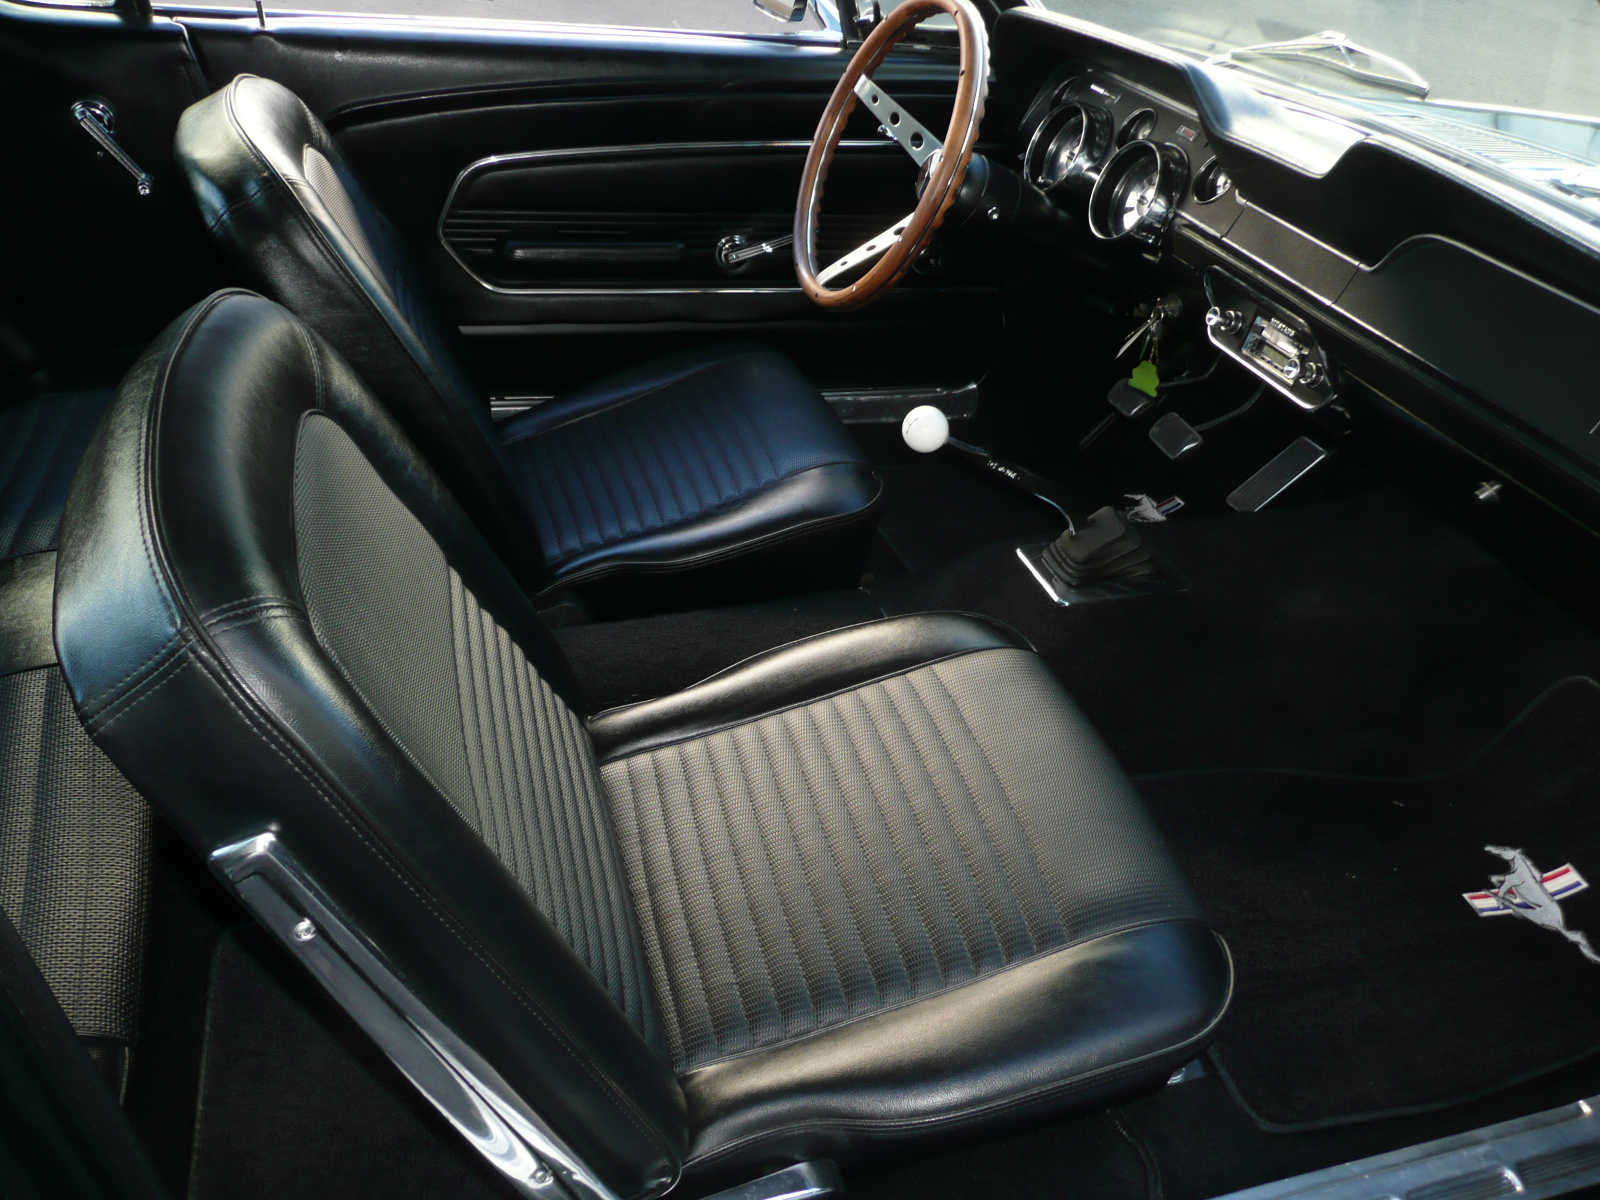 1967 ford mustang gt coupe 80976. Black Bedroom Furniture Sets. Home Design Ideas